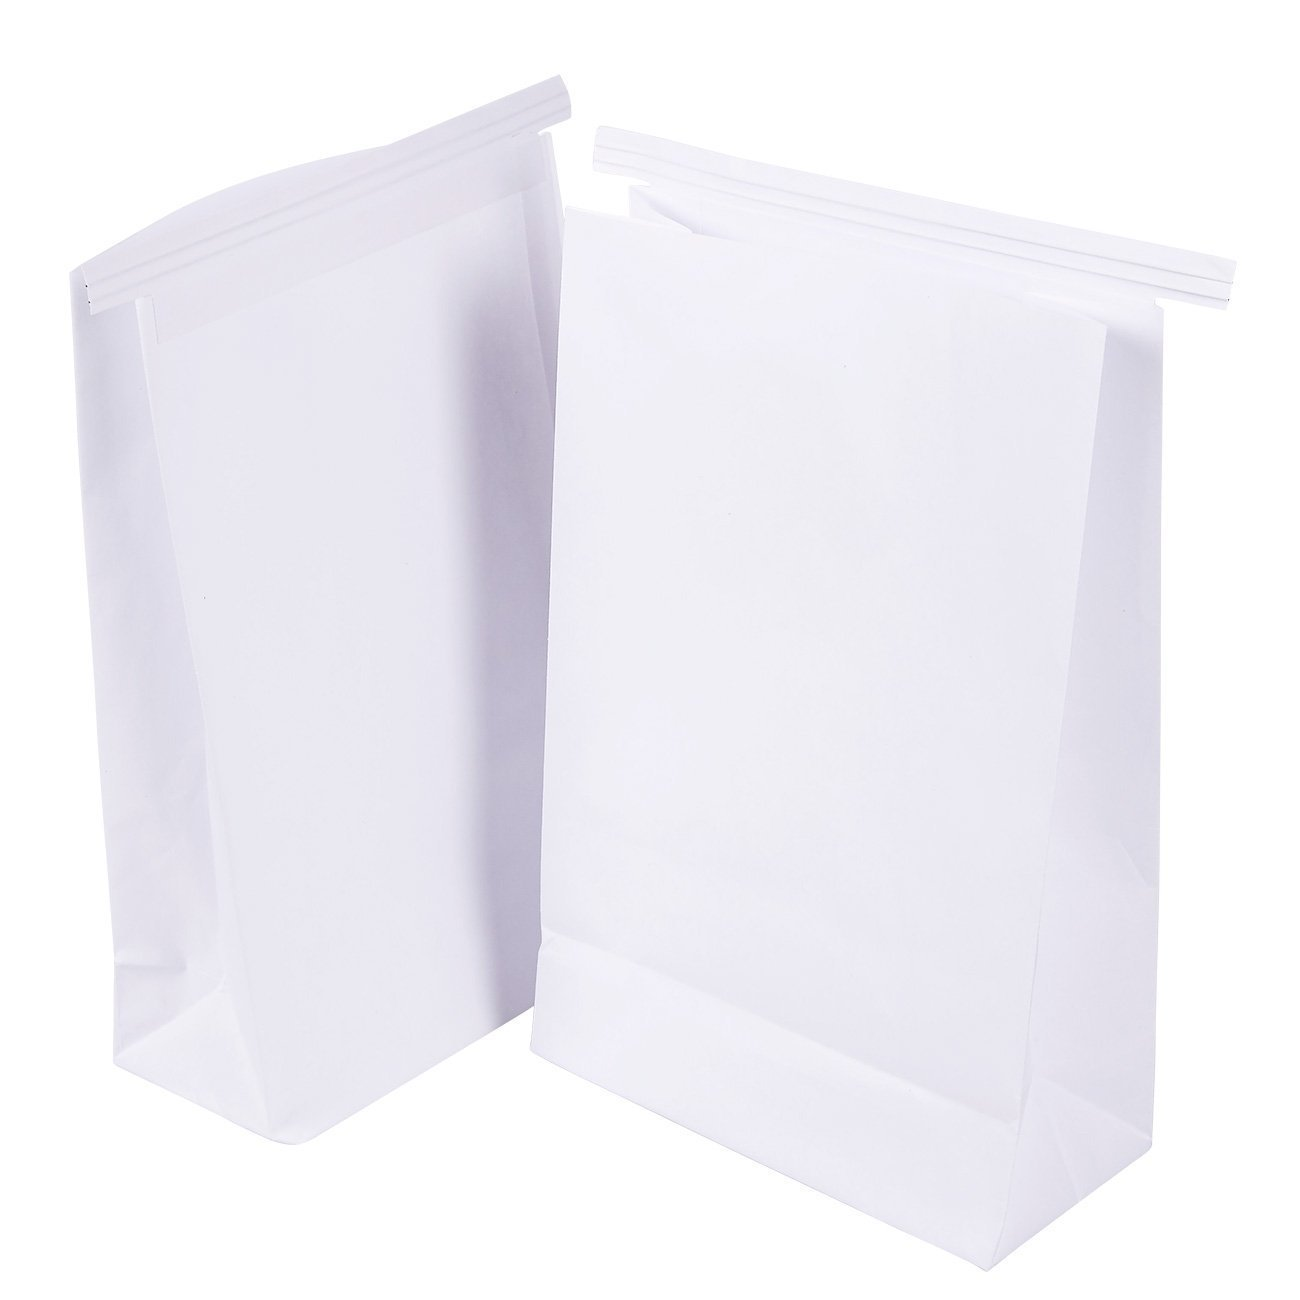 50-Pack Vomit Bags - No Print Plain White Emesis Barf Bags for Motion Sickness and Morning Sickness, Paper Puke Bag, 6 x 2.6 x 9.7 inches by Juvale (Image #8)